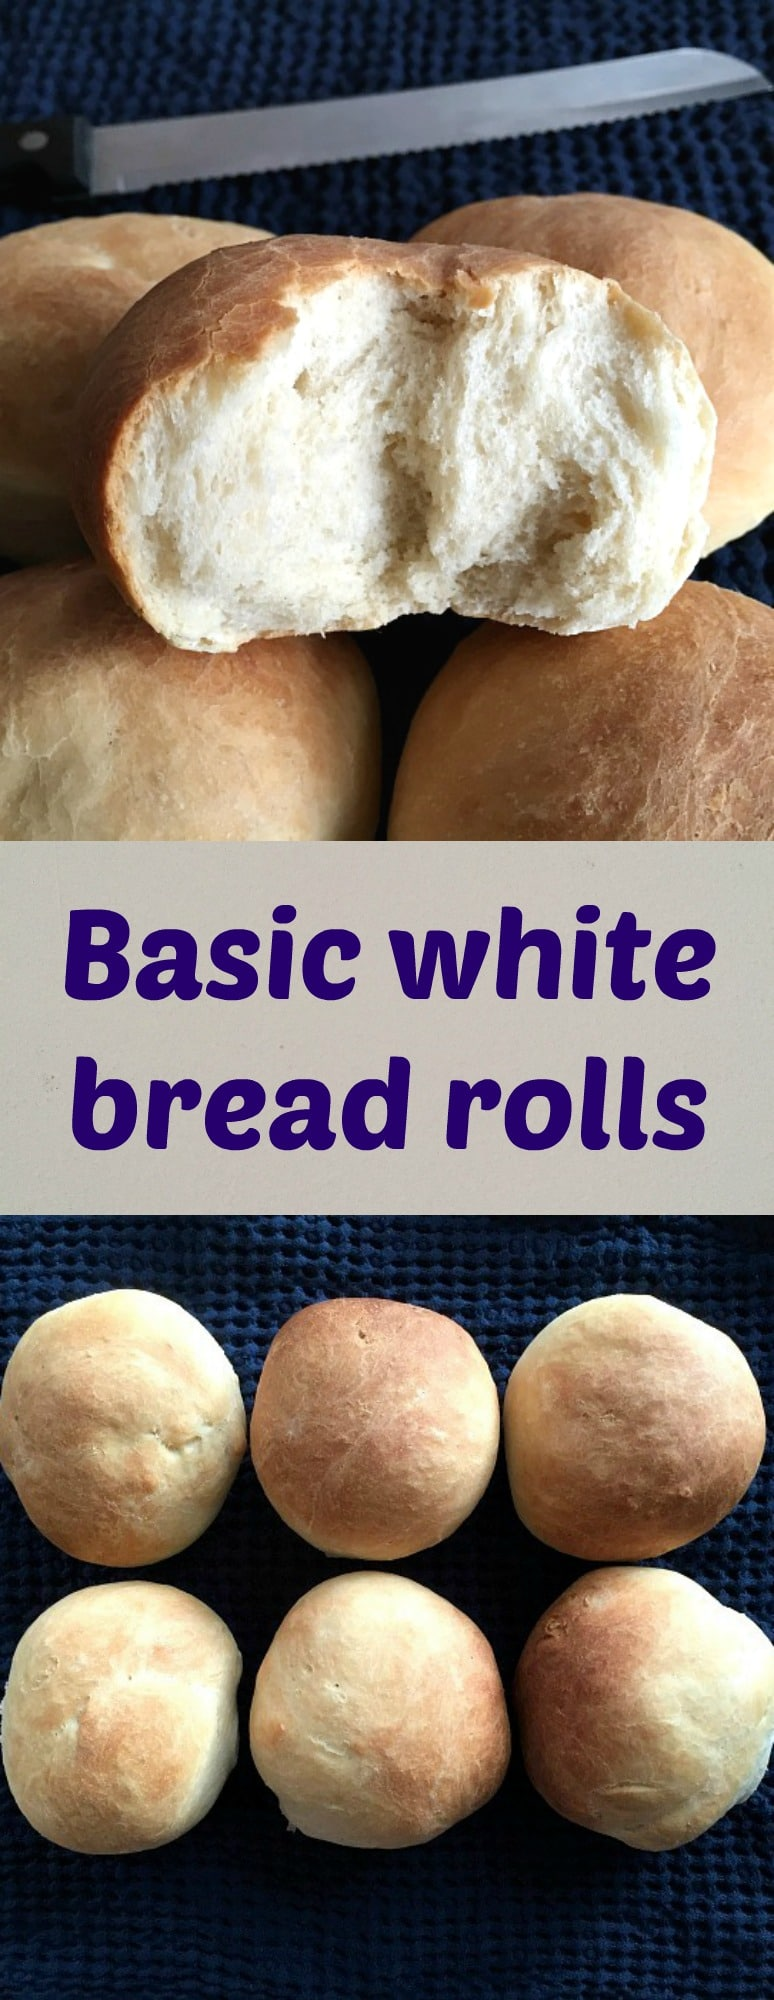 Basic white bread rolls